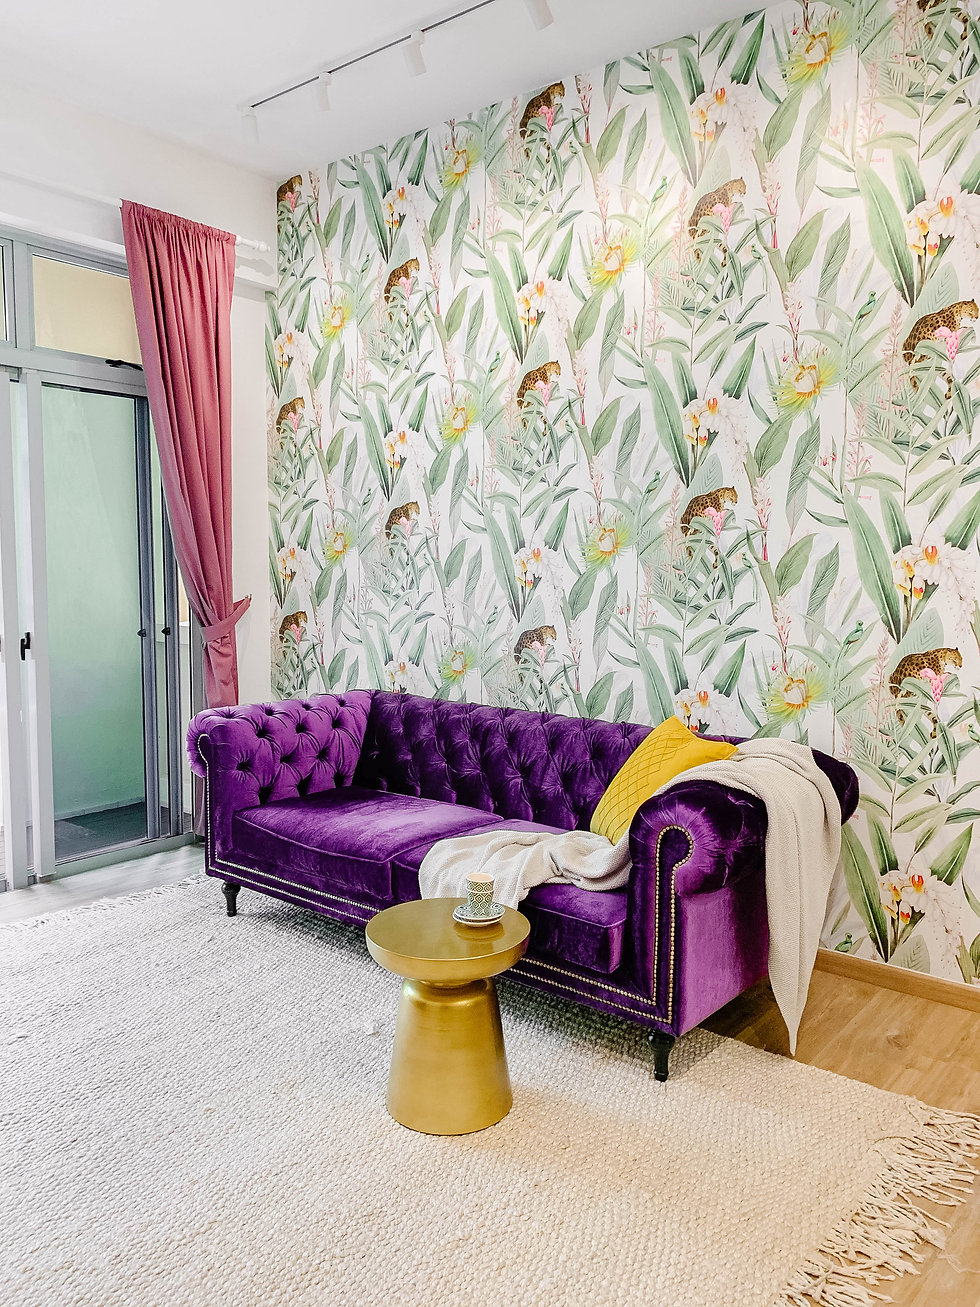 Playful Eclecticism in this Bold Home